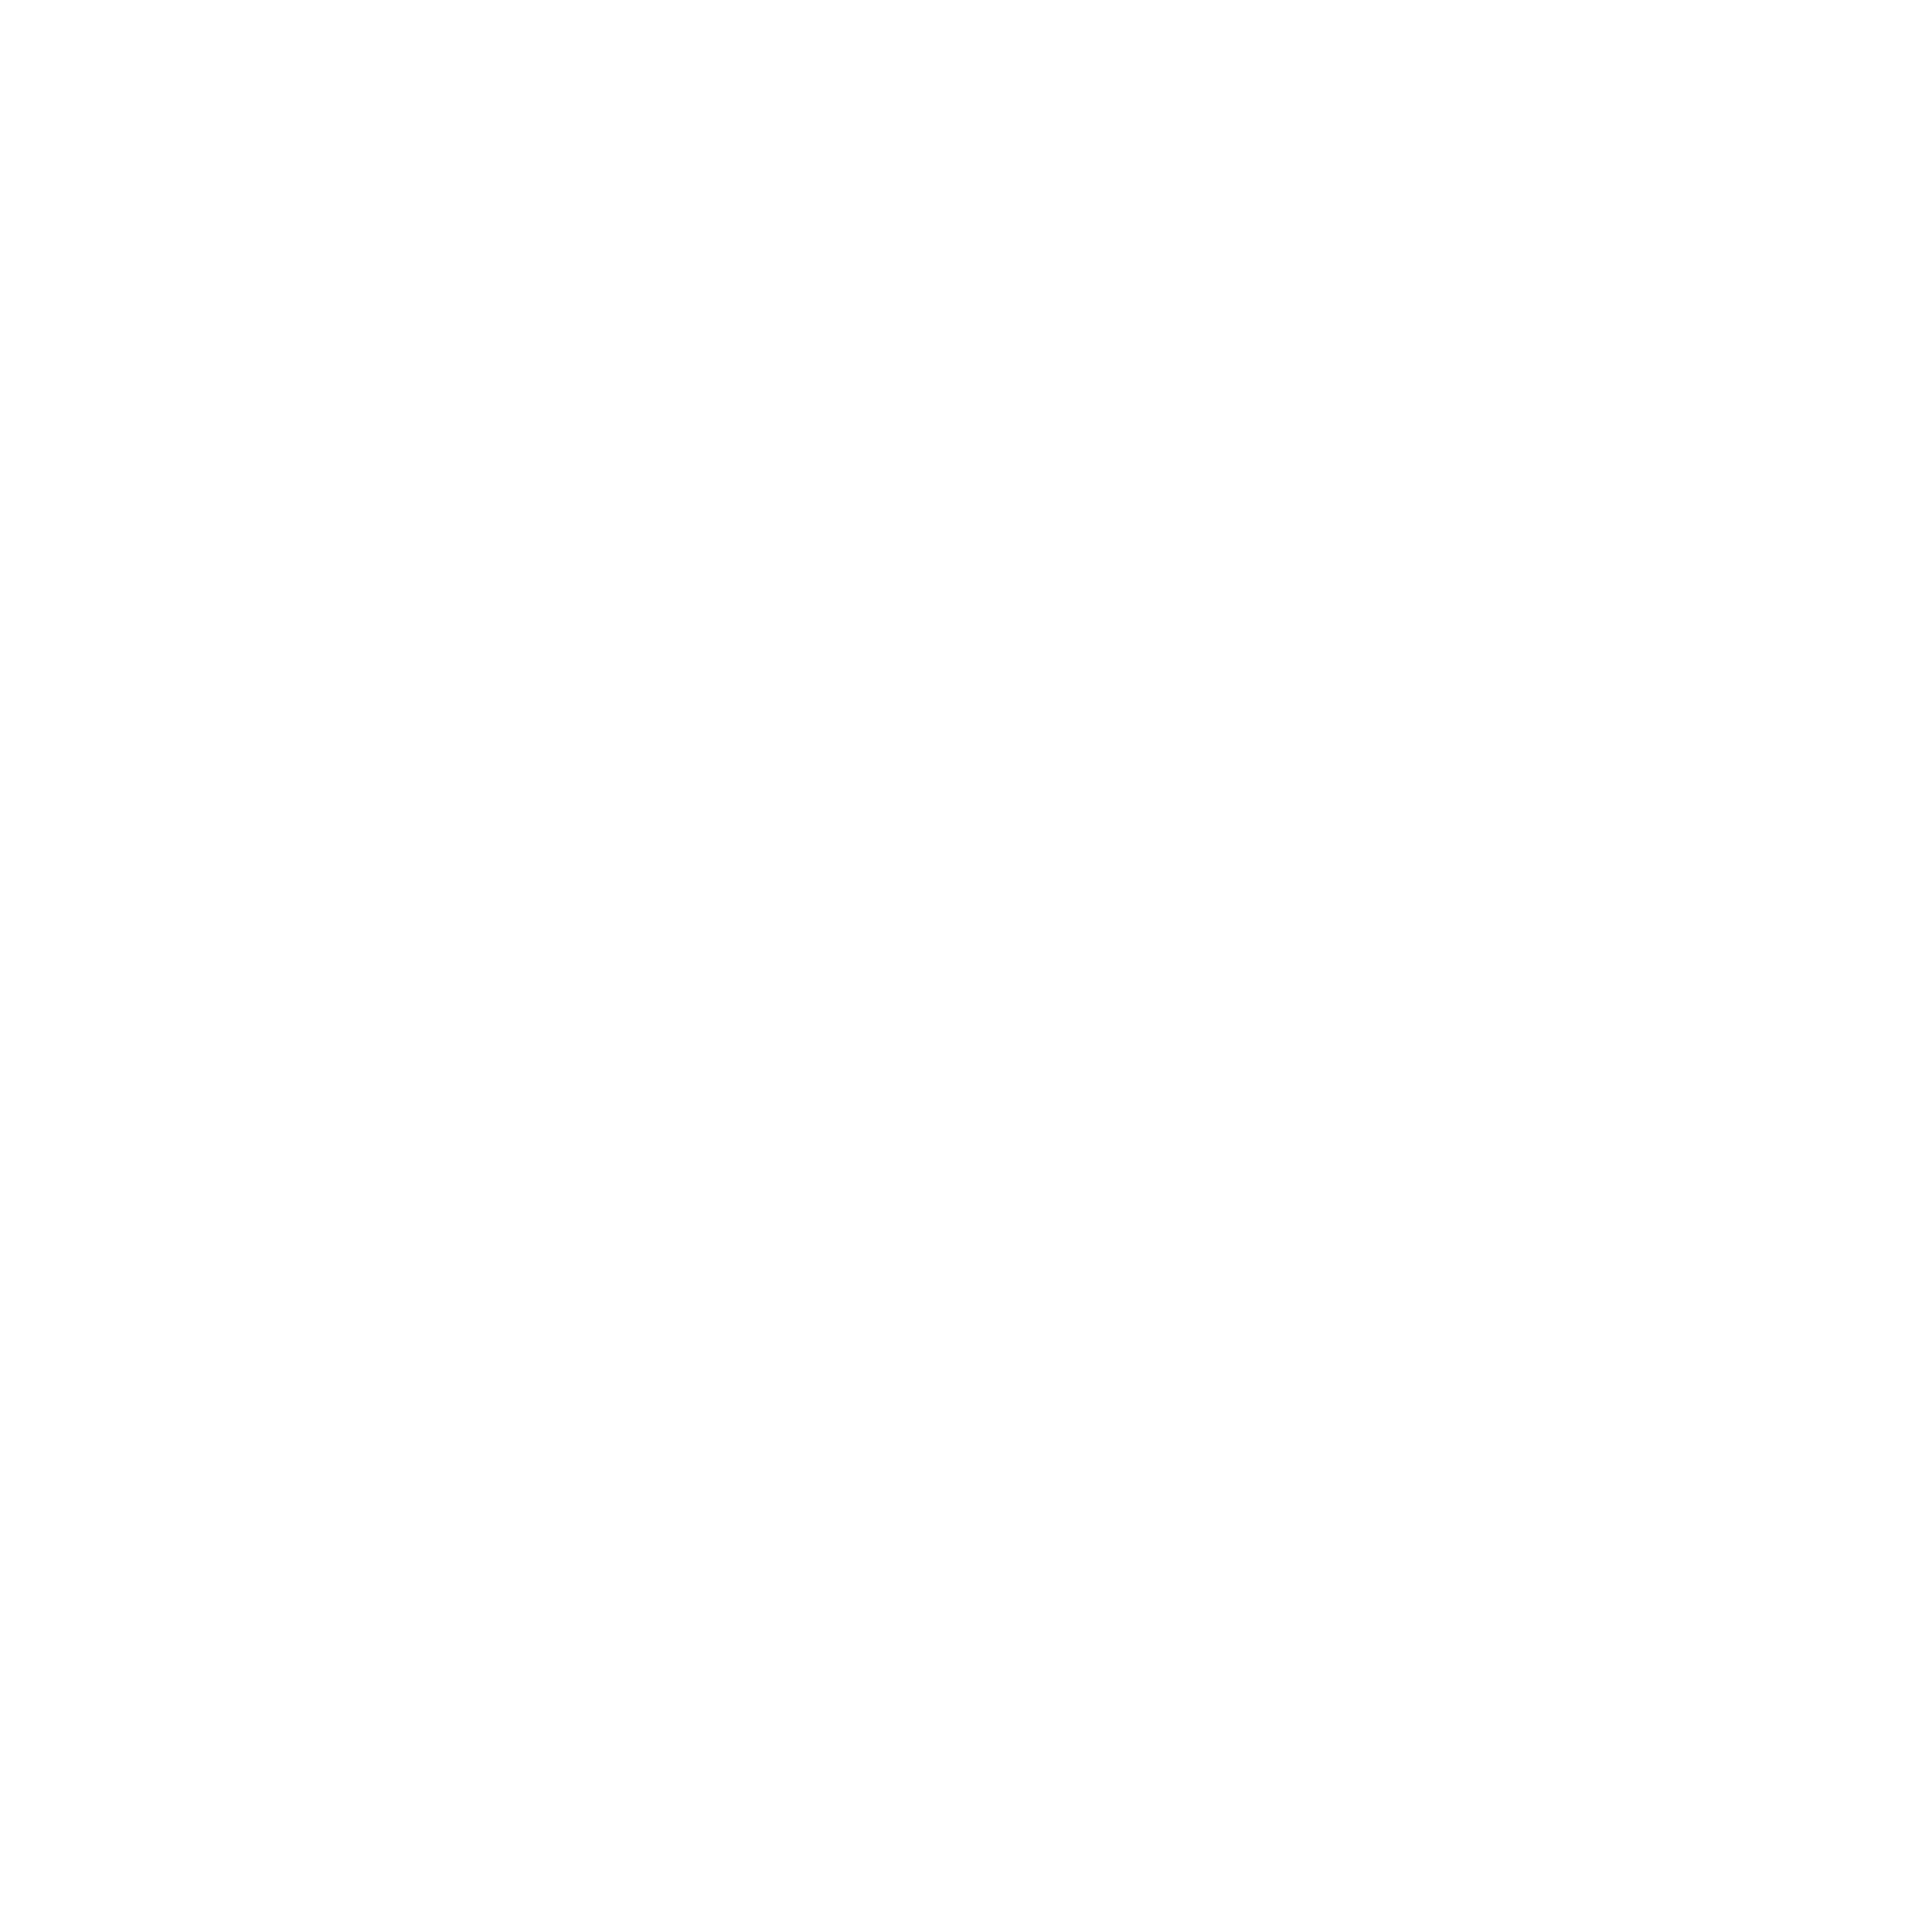 971254e26f1a Strange Grooves - Podcasts + Music Community